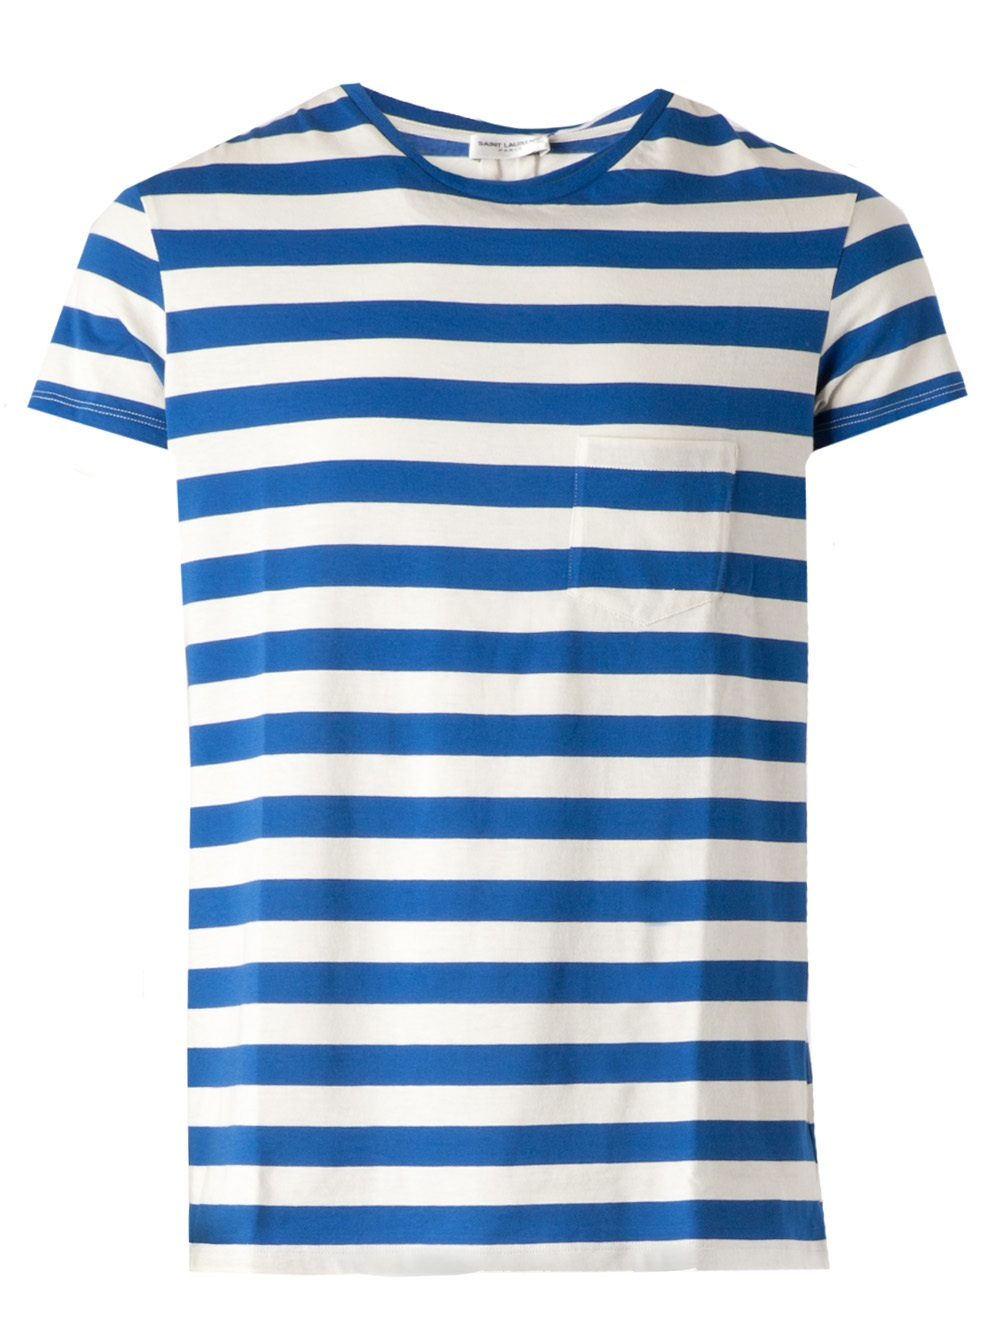 white and blue striped t shirt | Gommap Blog